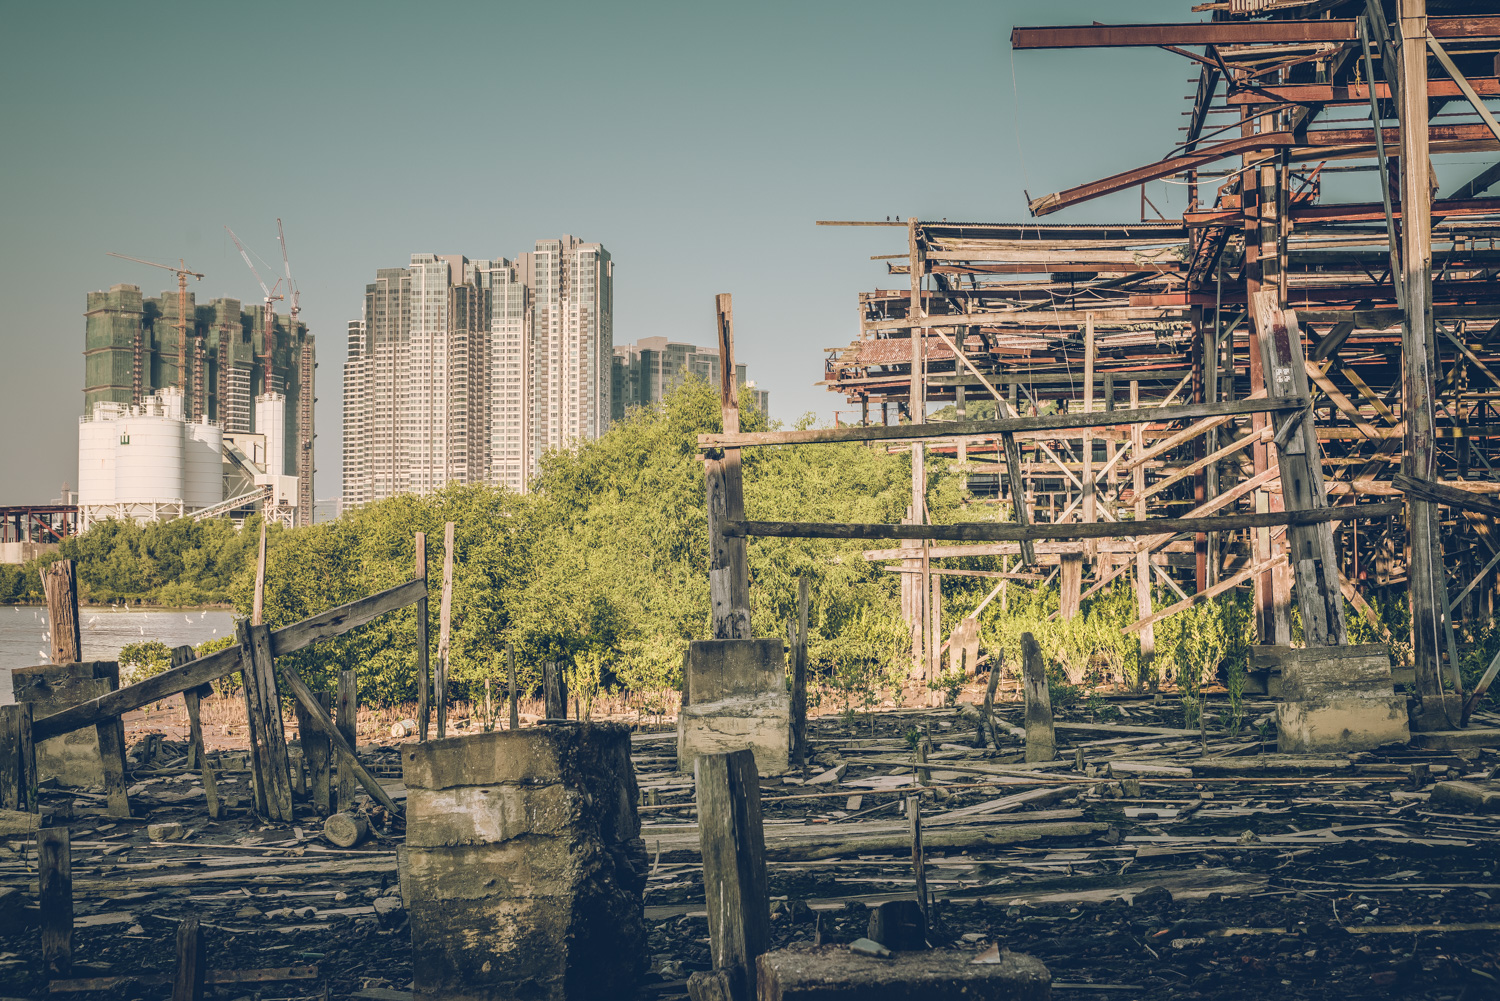 The Abandoned Shipyard in Macau